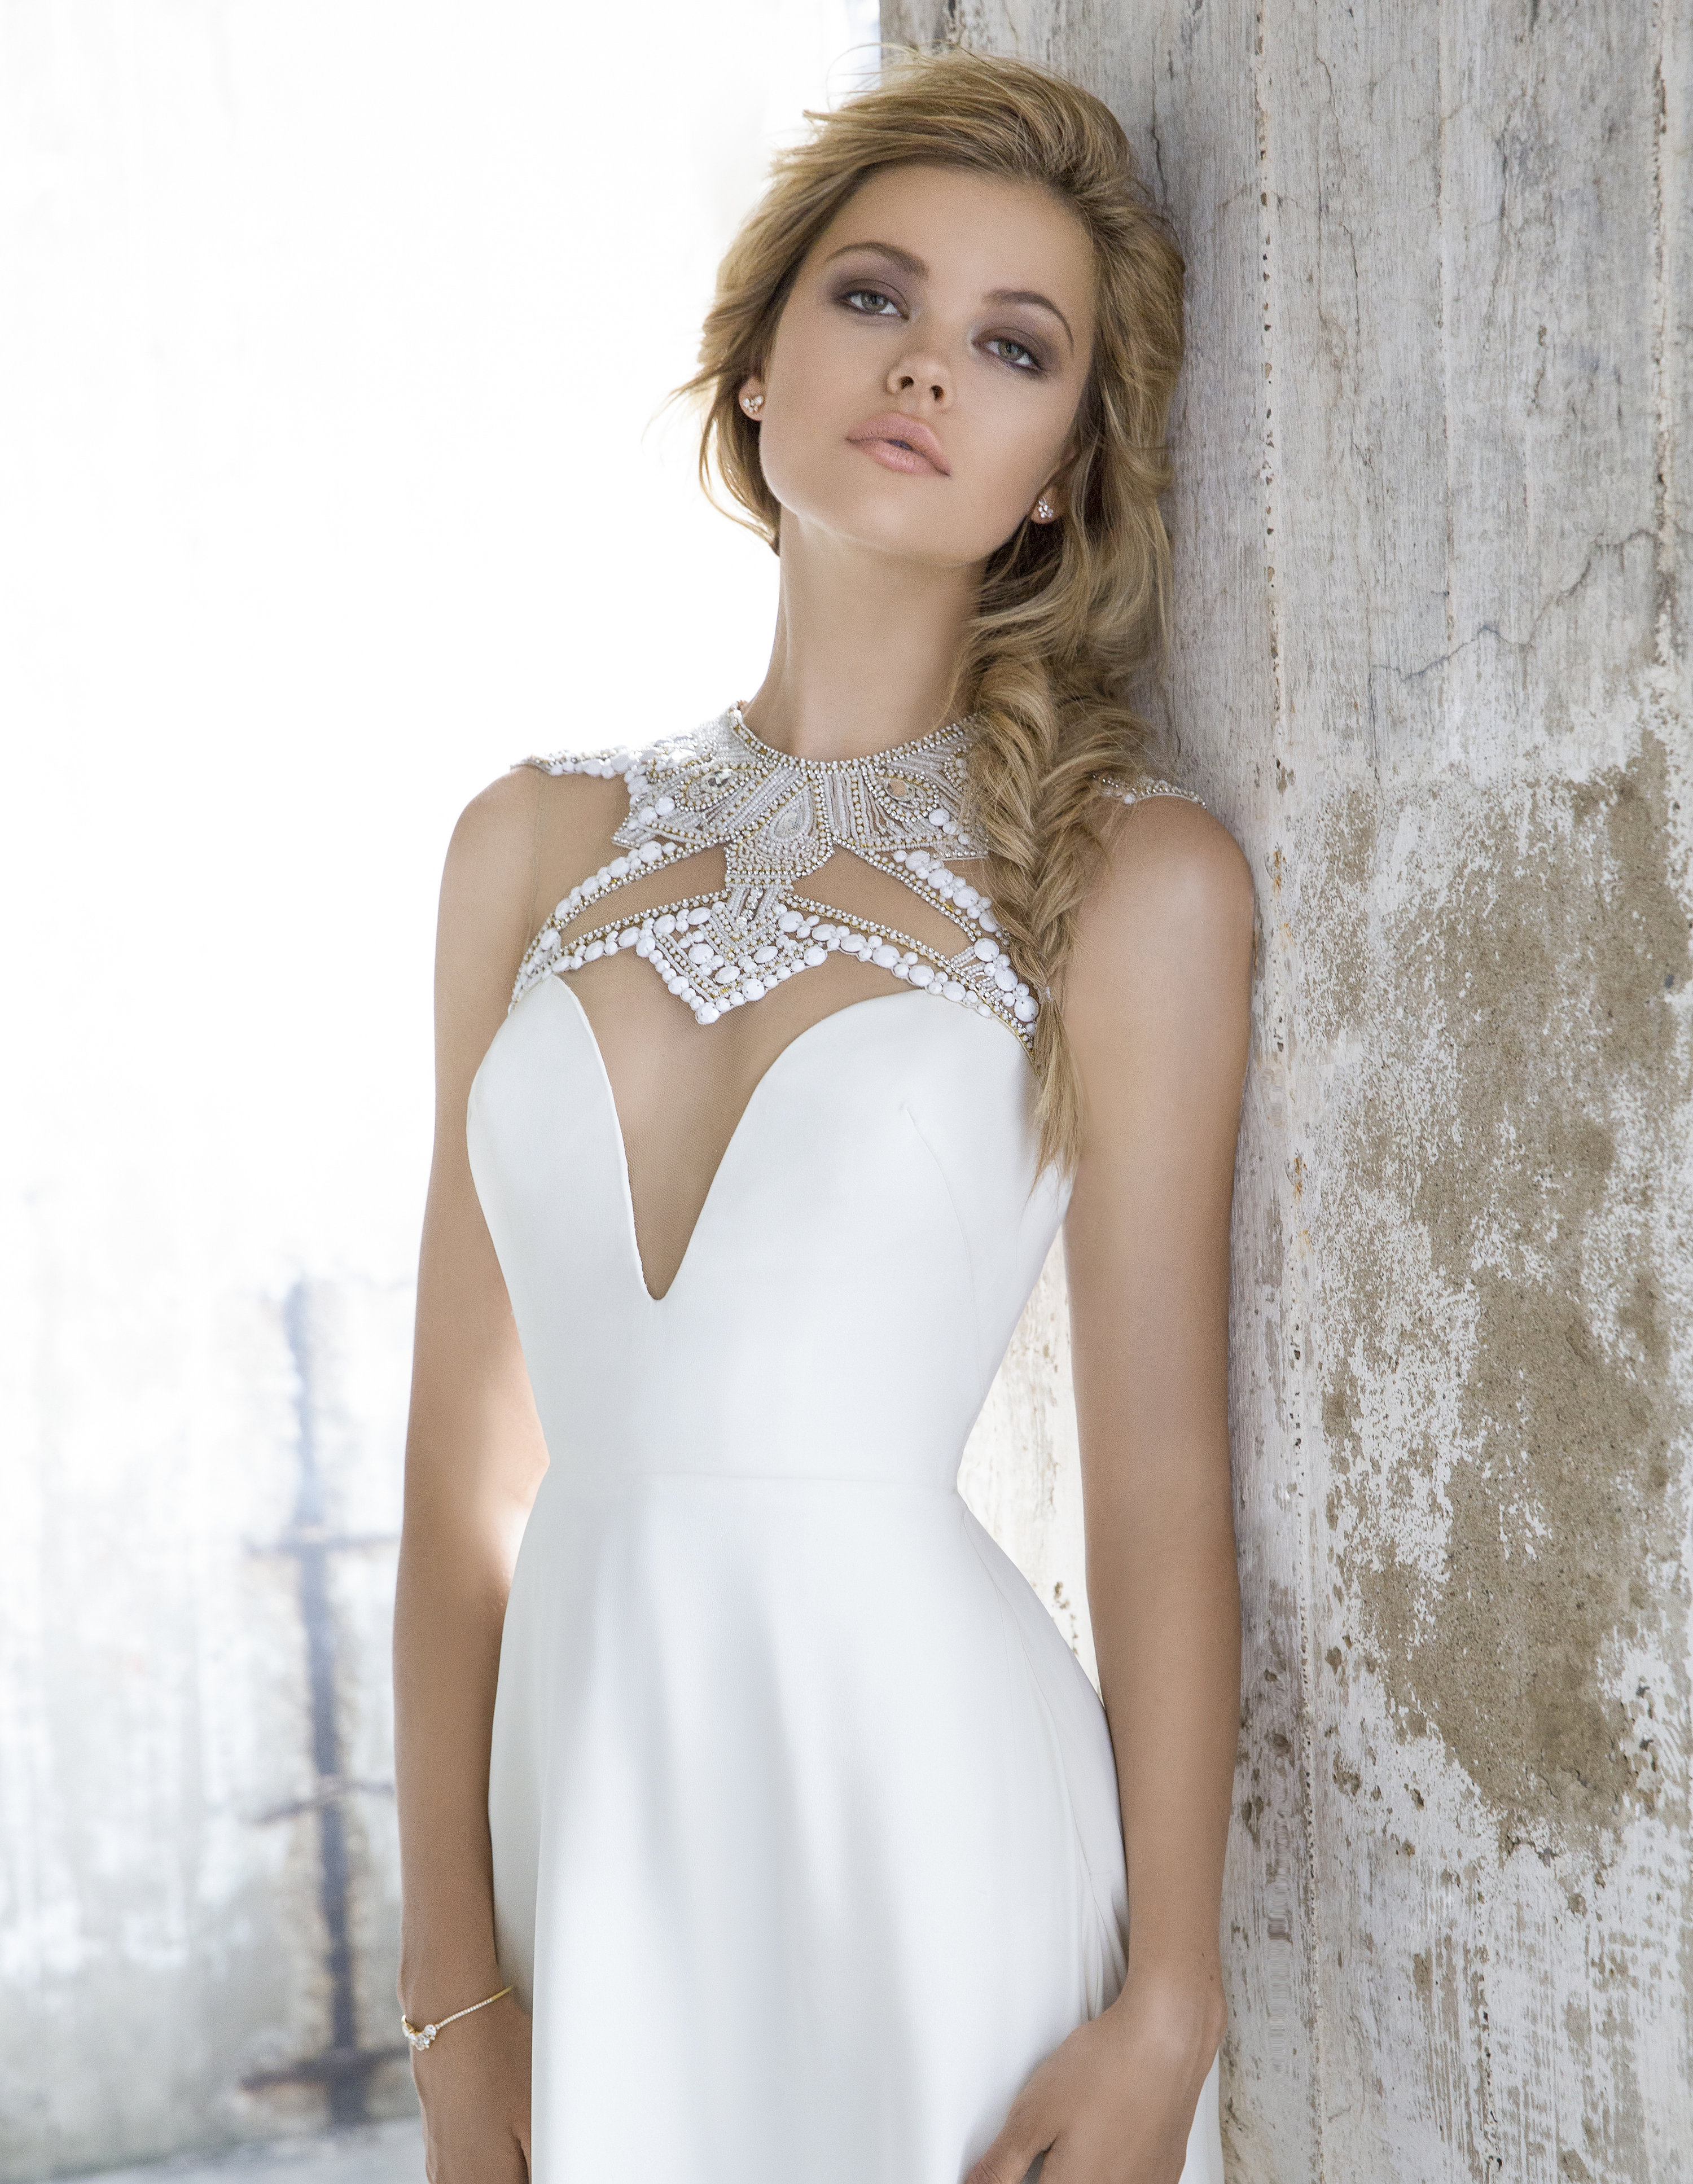 Bridal gowns and wedding dresses by jlm couture style 6759 cleo style 6759 ad shot jlm pinterest icon ombrellifo Images